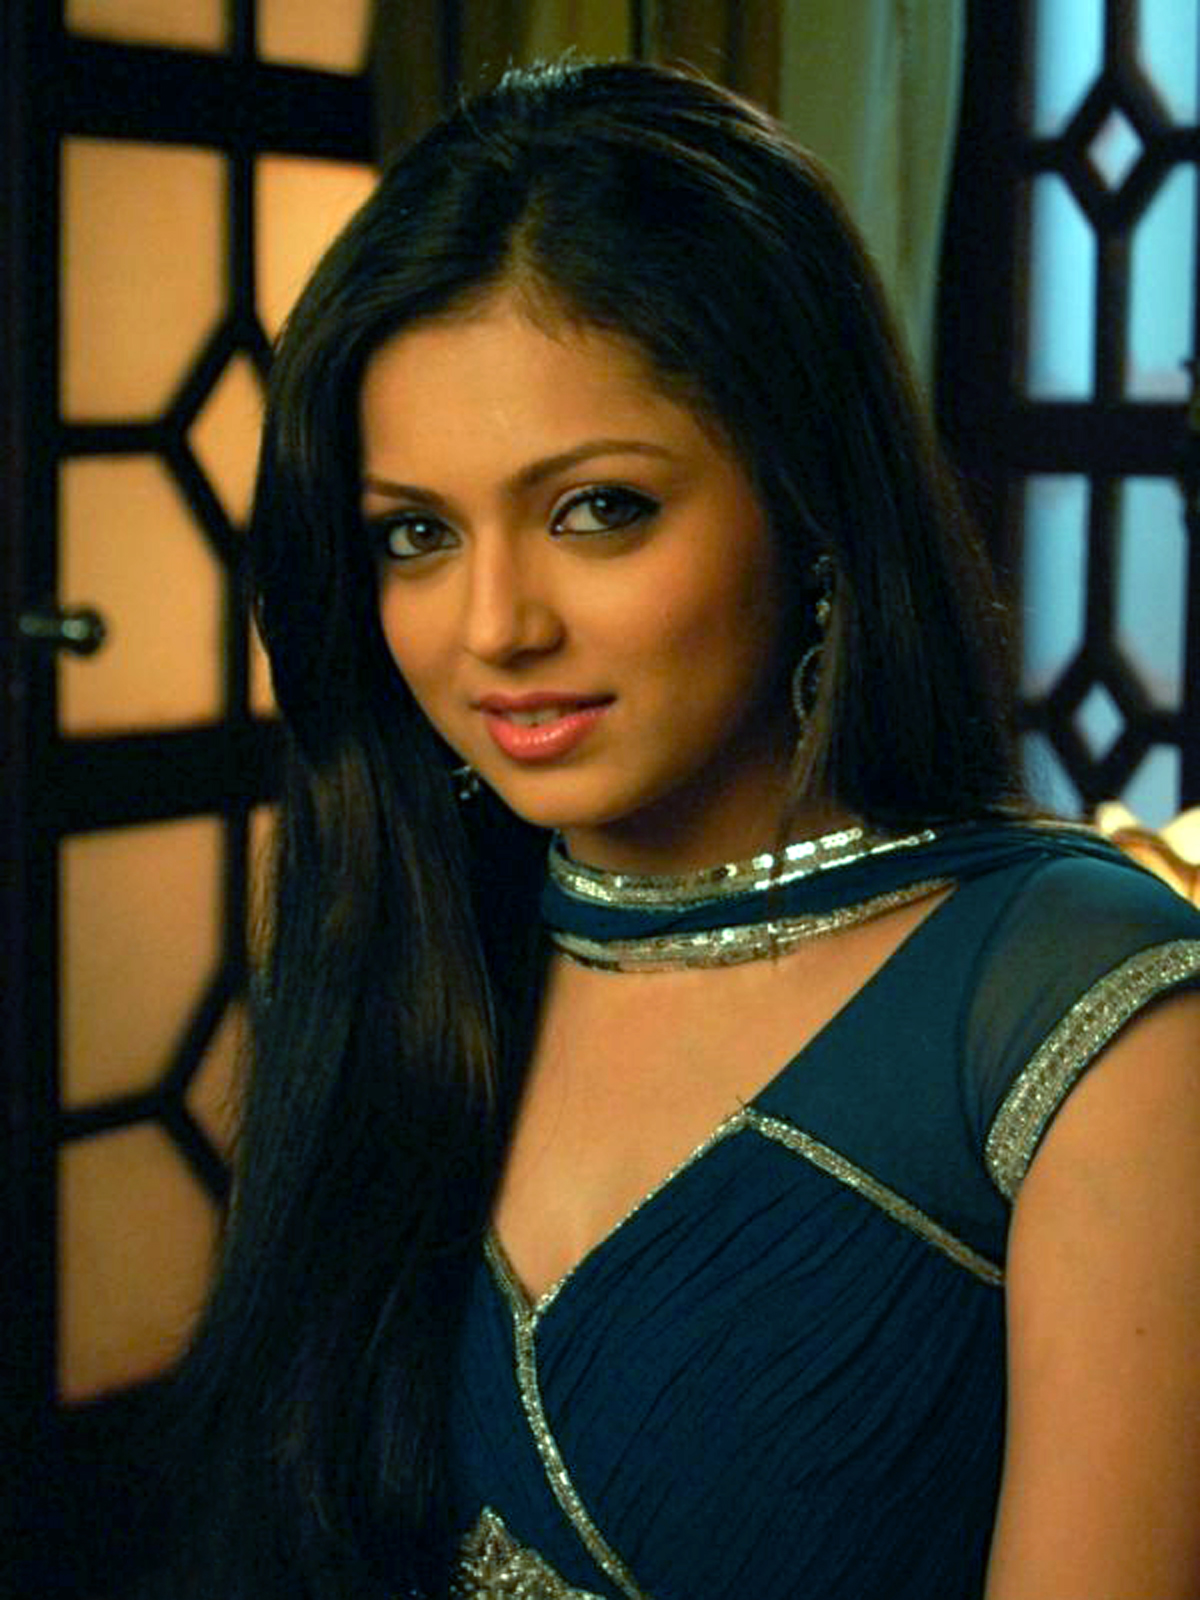 Cute Drashti Dhami Home Look Mobile Hd Deskop Background Images Free